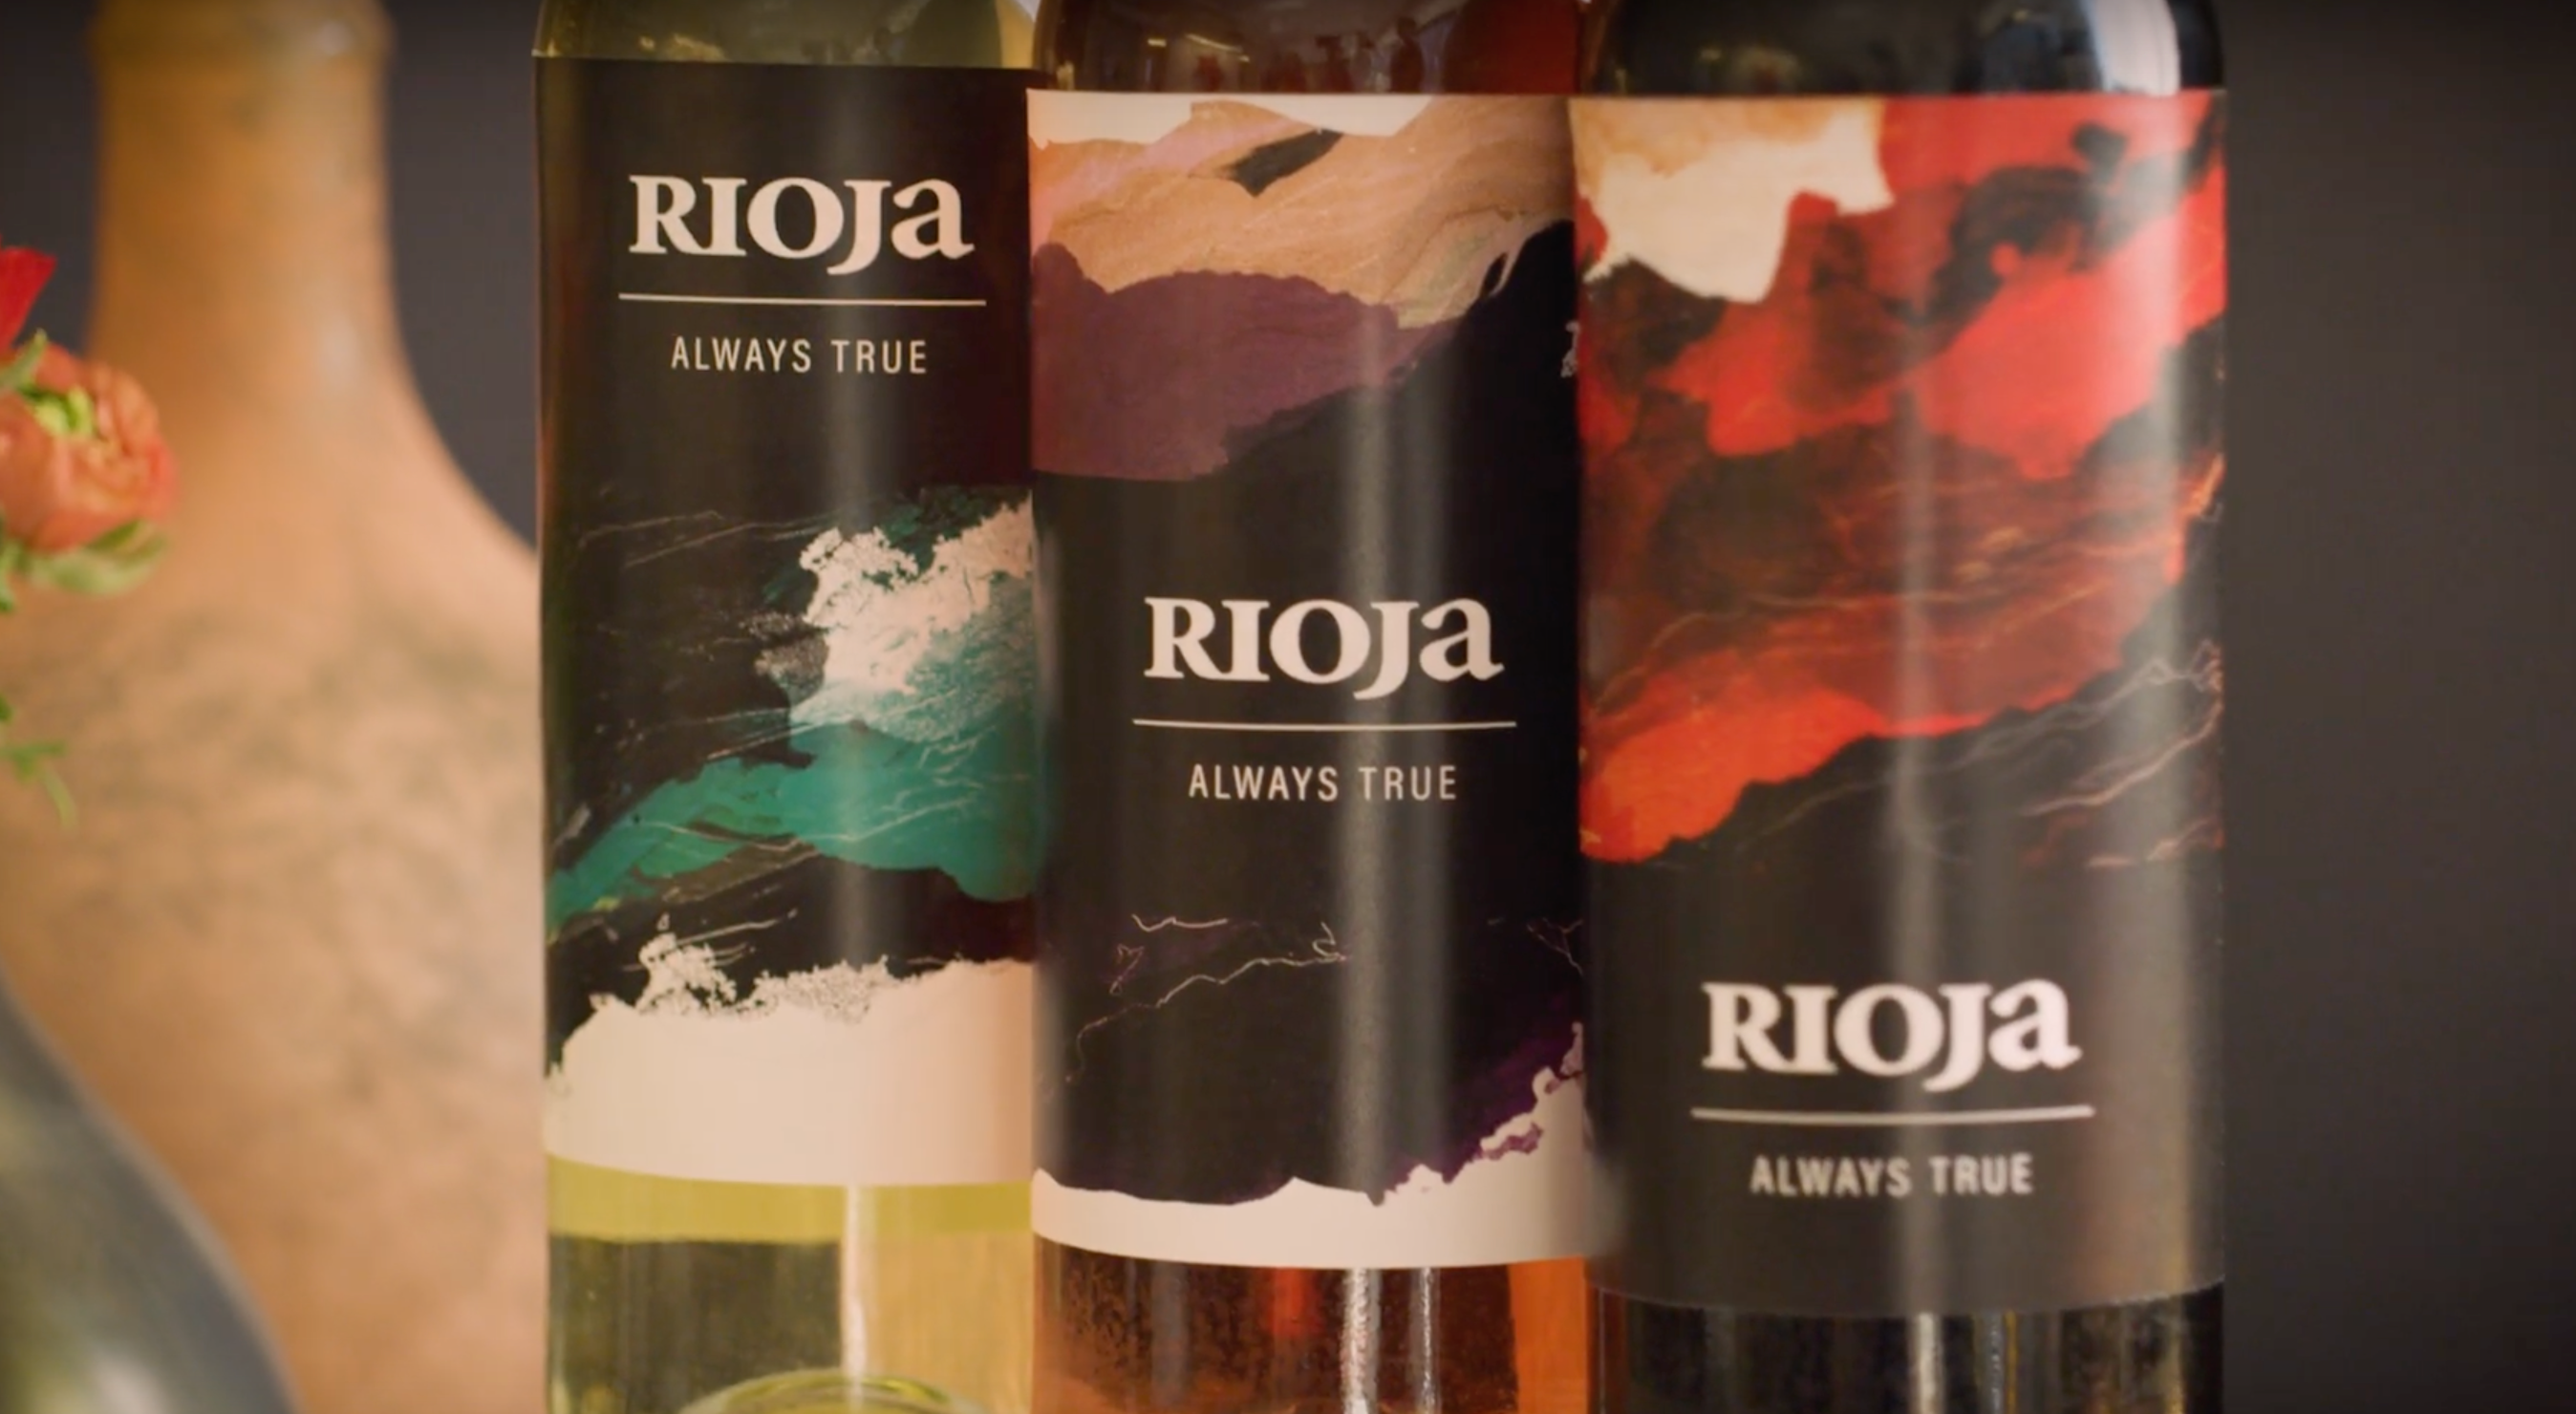 Rioja Wines Commercial Airs on Top Chef